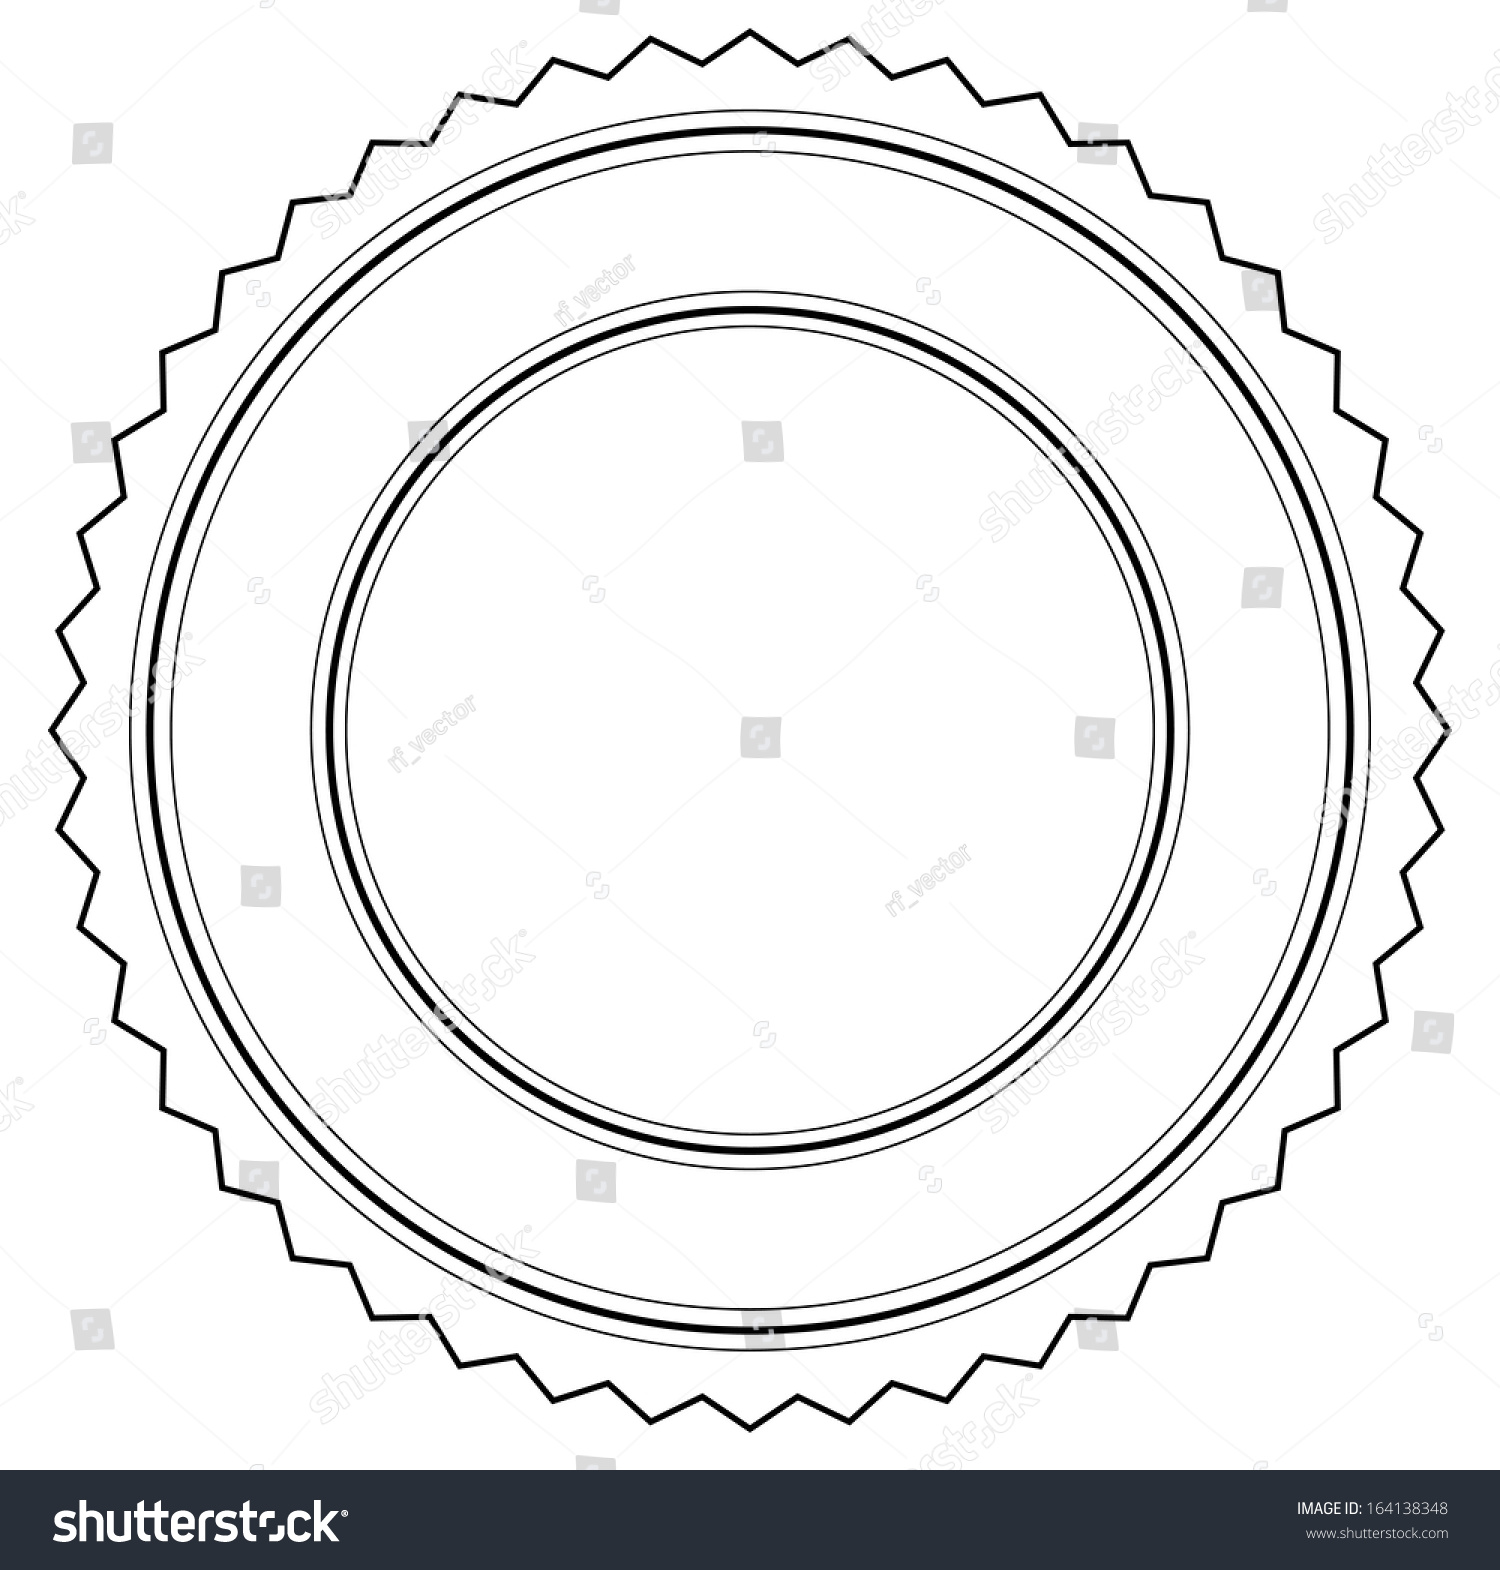 simple badge template outline stock vector royalty free 164138348